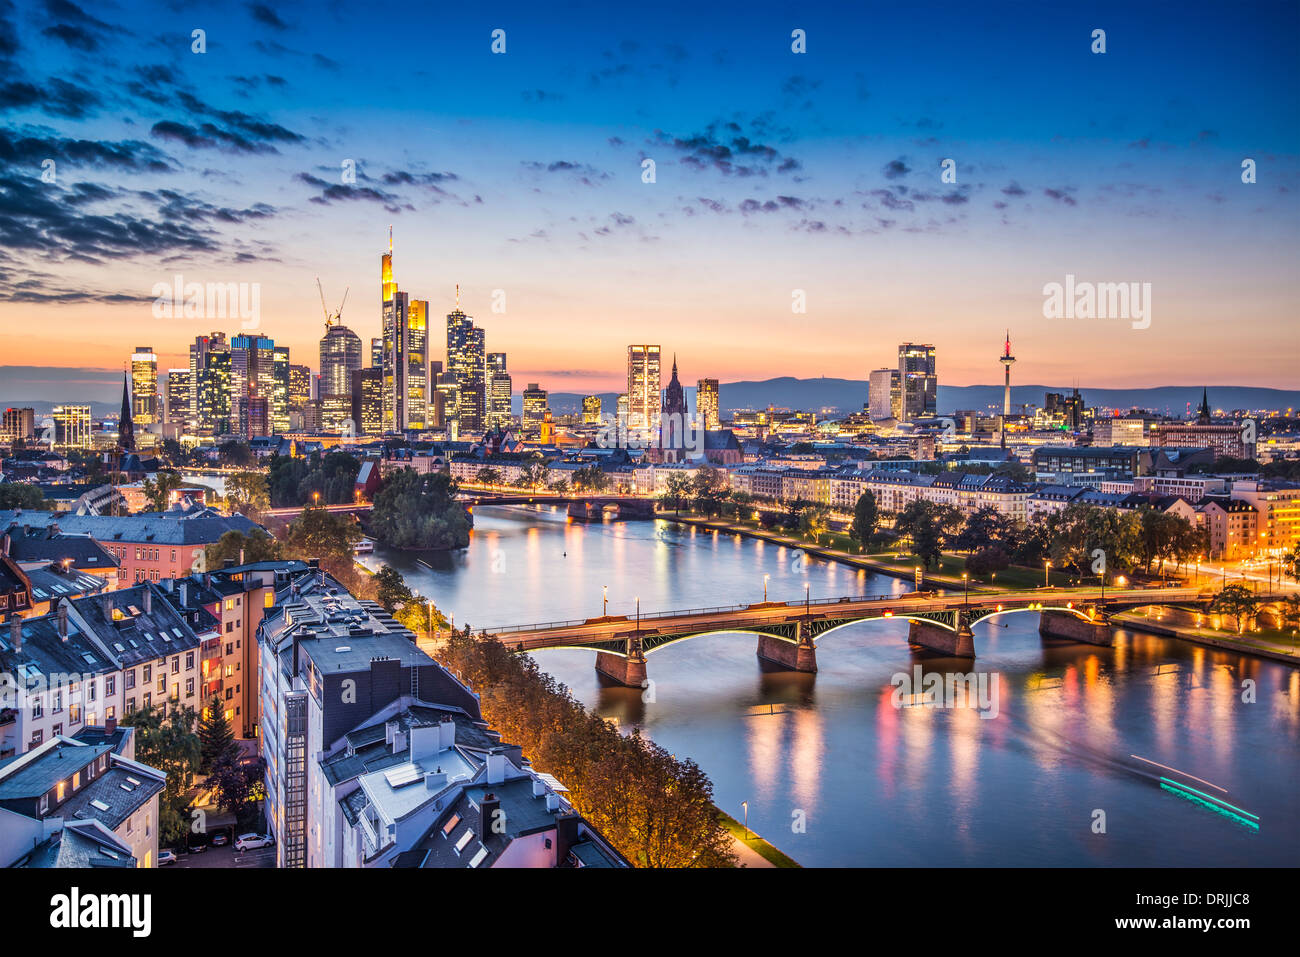 Frankfurt, Germany at the Cathedral. - Stock Image